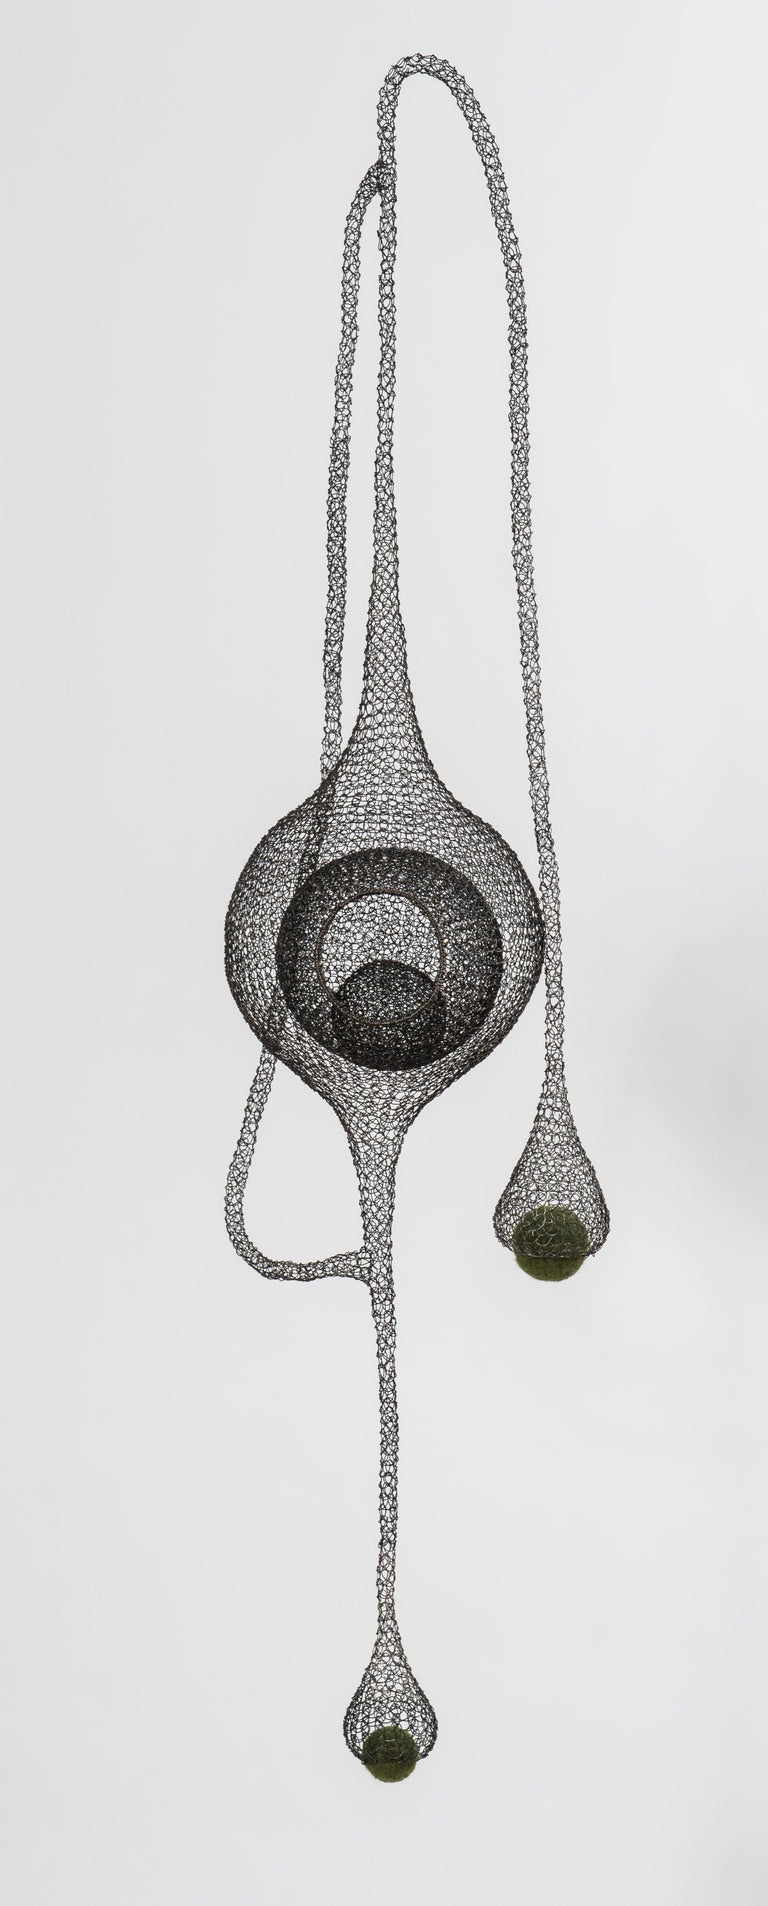 "Delphine Grandvaux Figurative Sculpture - ""Safe Harbor III"", Handmade Metal Mesh and Green Wool Pendant Mural Sculpture"